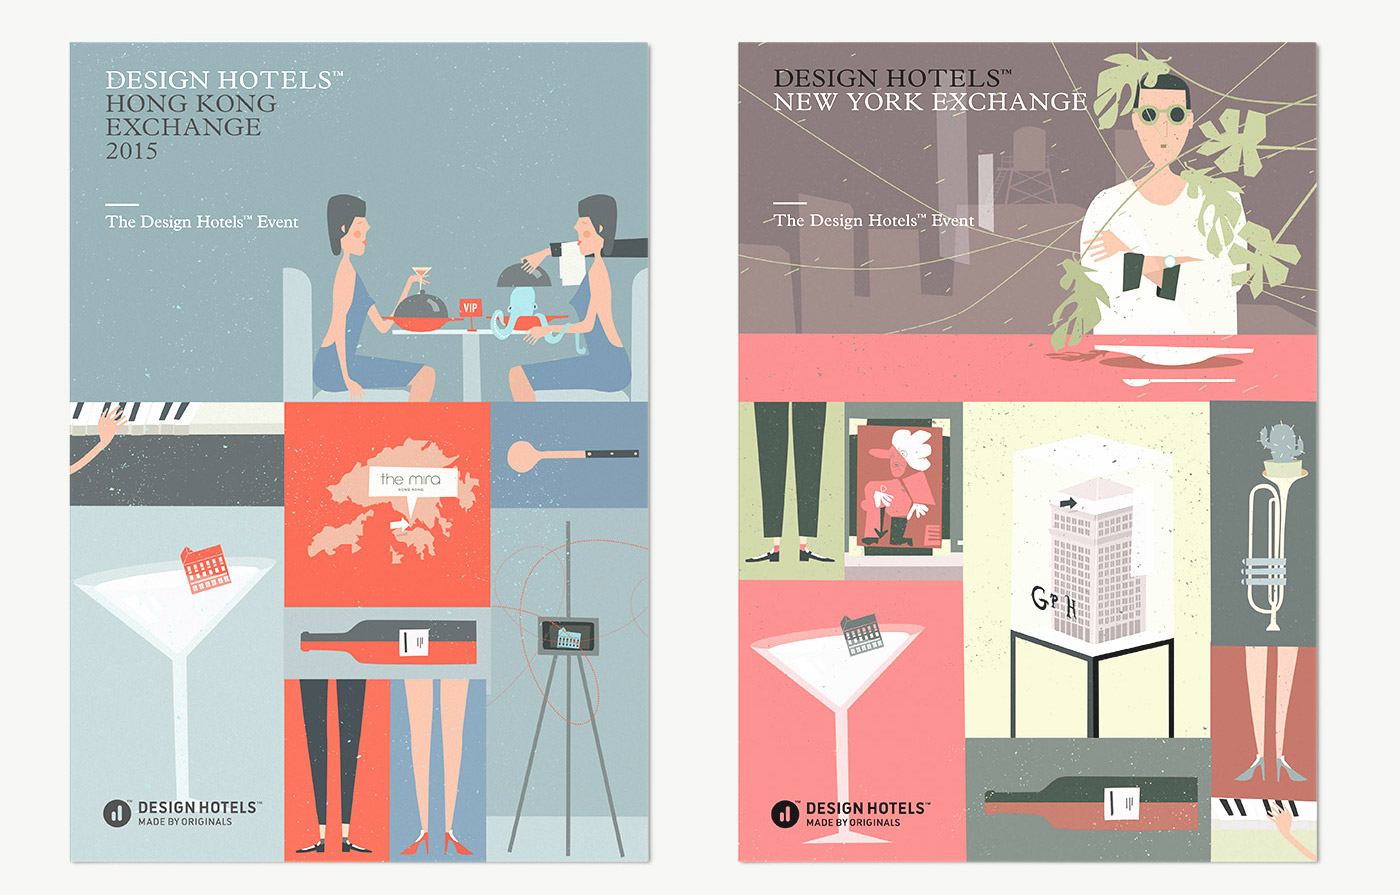 designhotels-community-illus-part4a